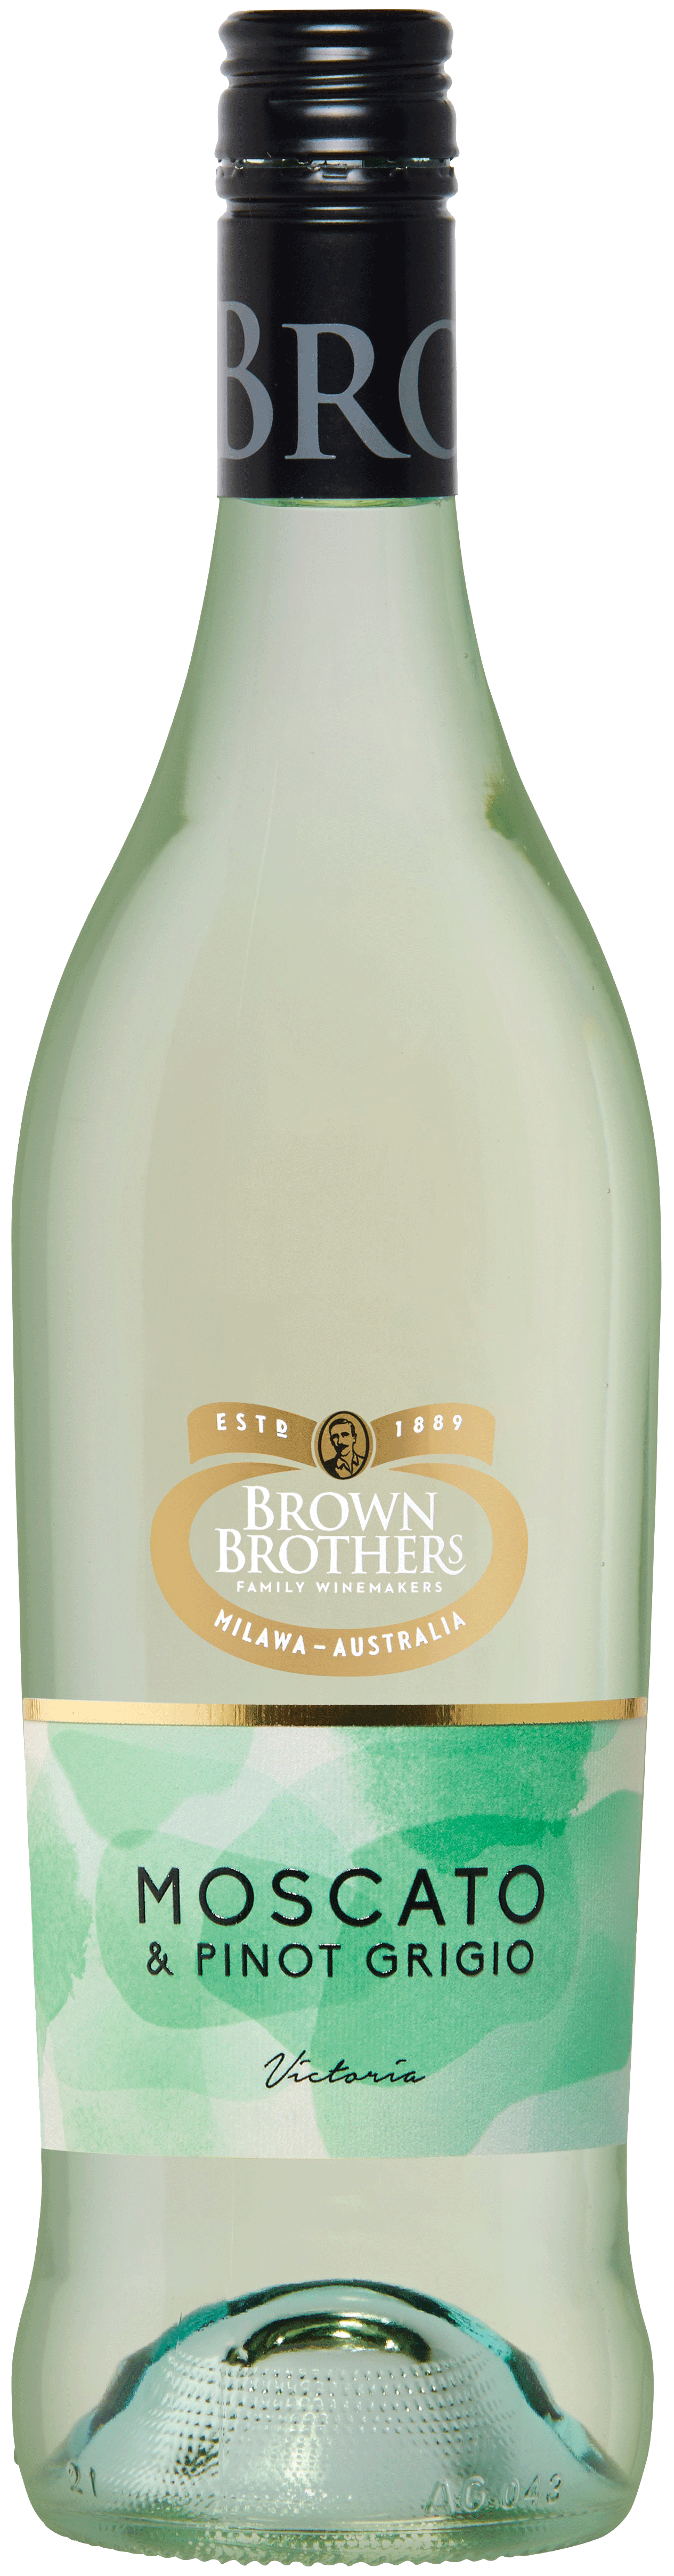 Brown Brothers Moscato & Pinot Grigio